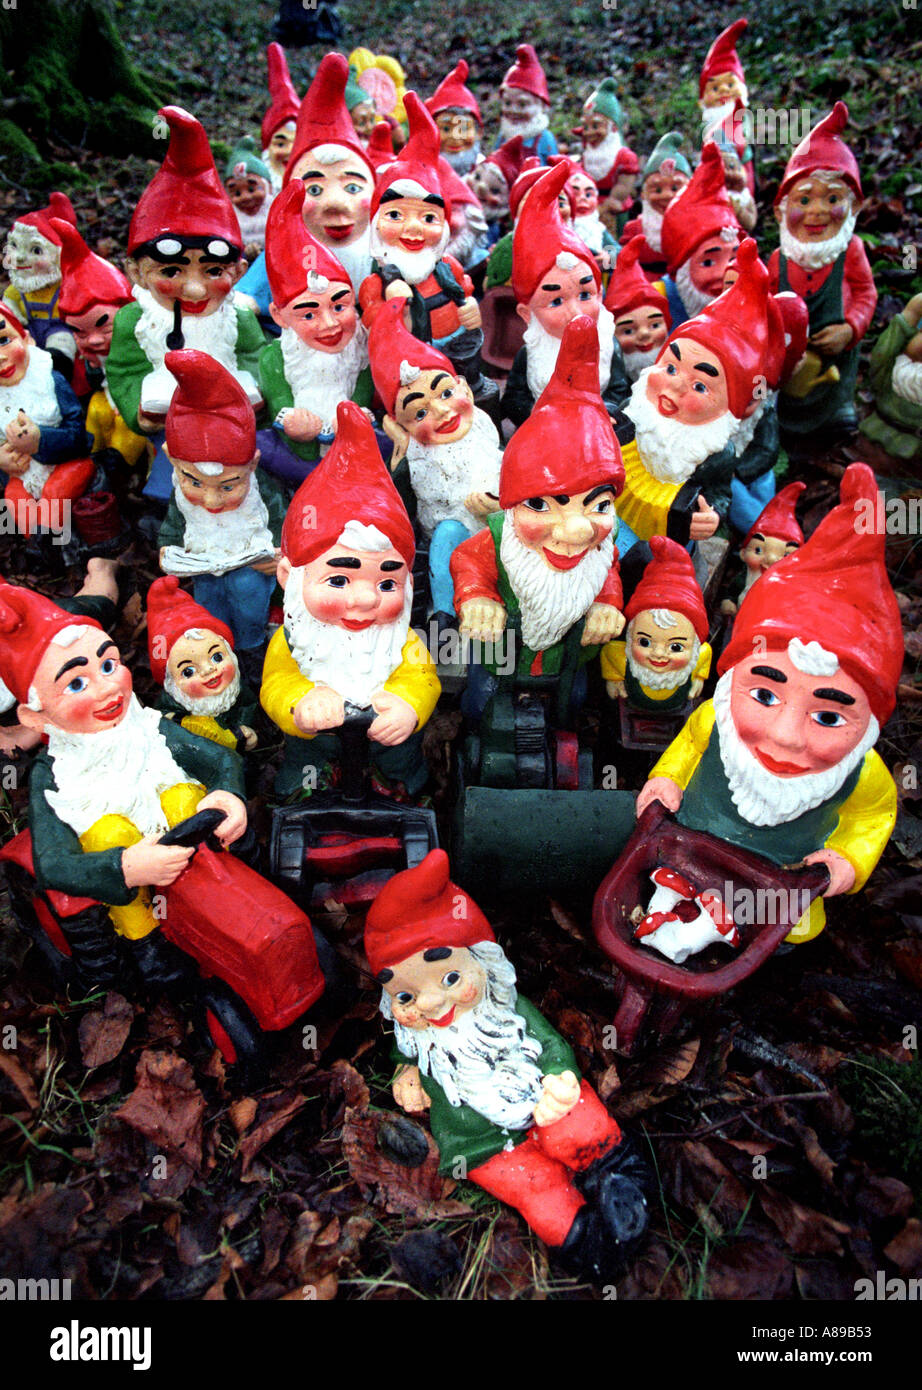 An Army Of Garden Gnomes   Stock Image